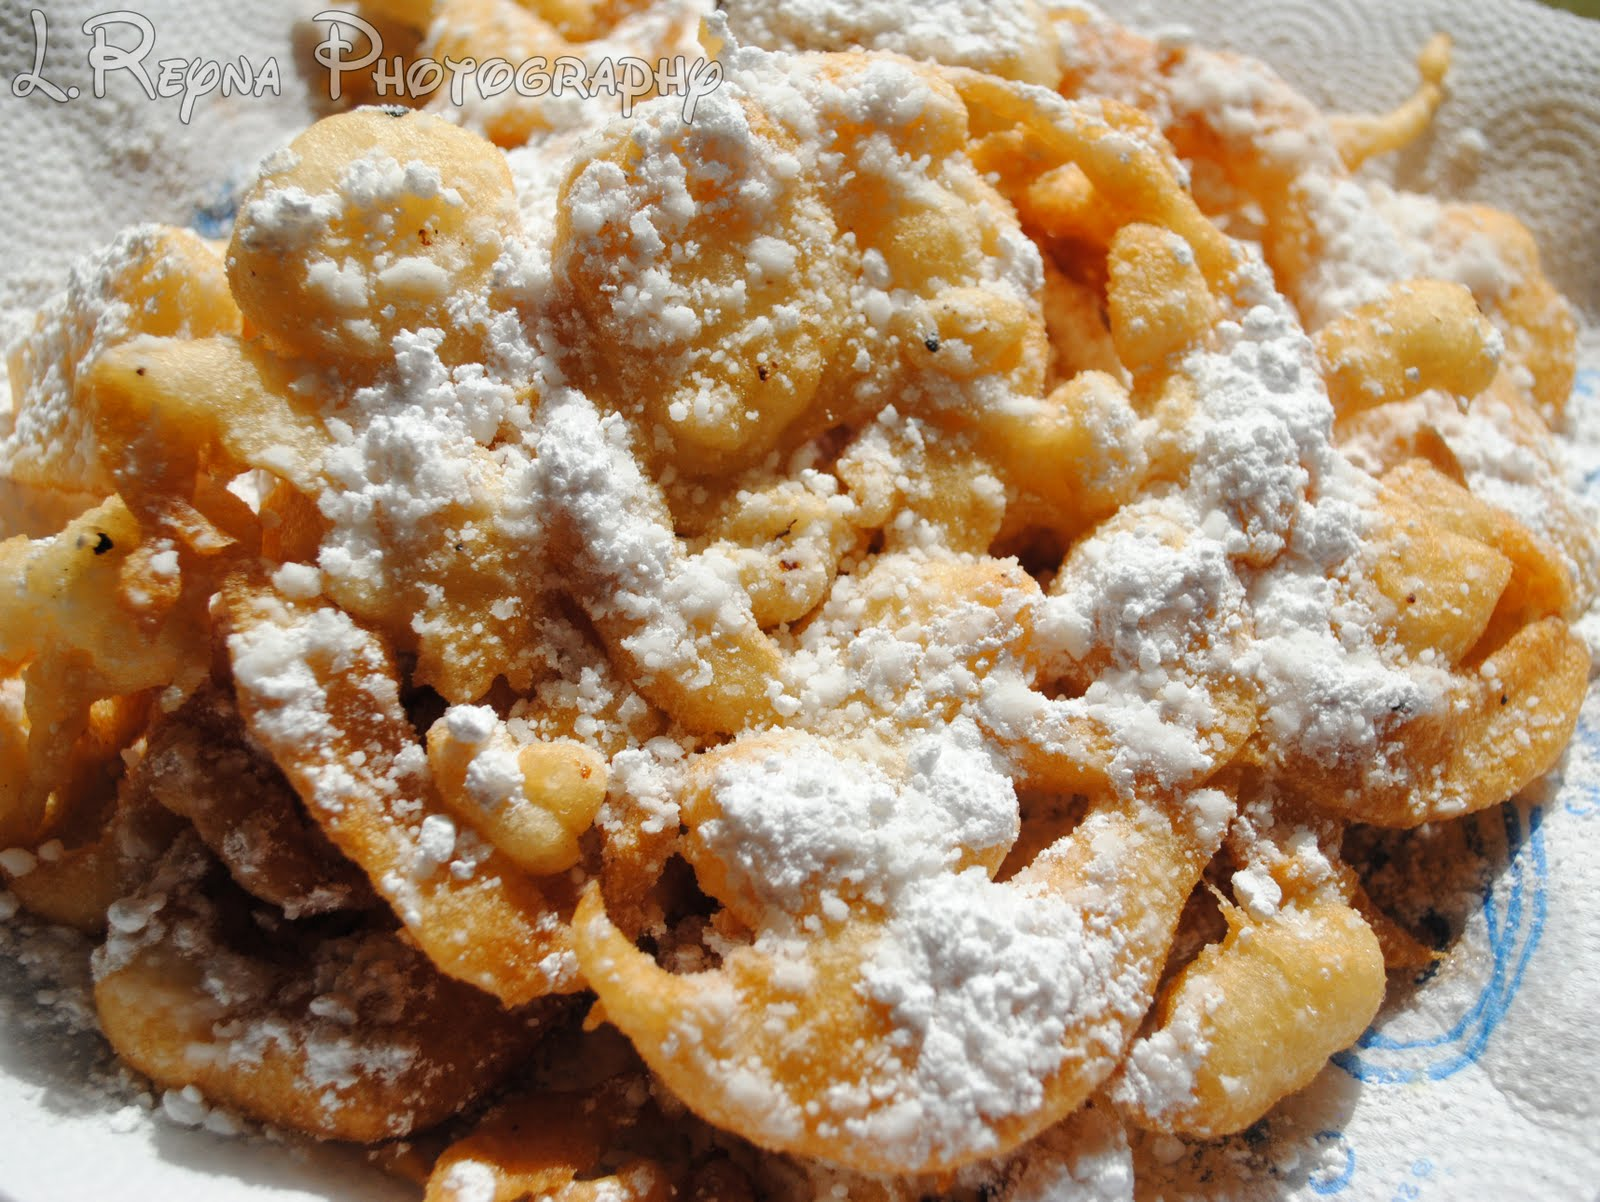 The Disney Diner: Sleepy Hollow: Funnel Cake Recipe